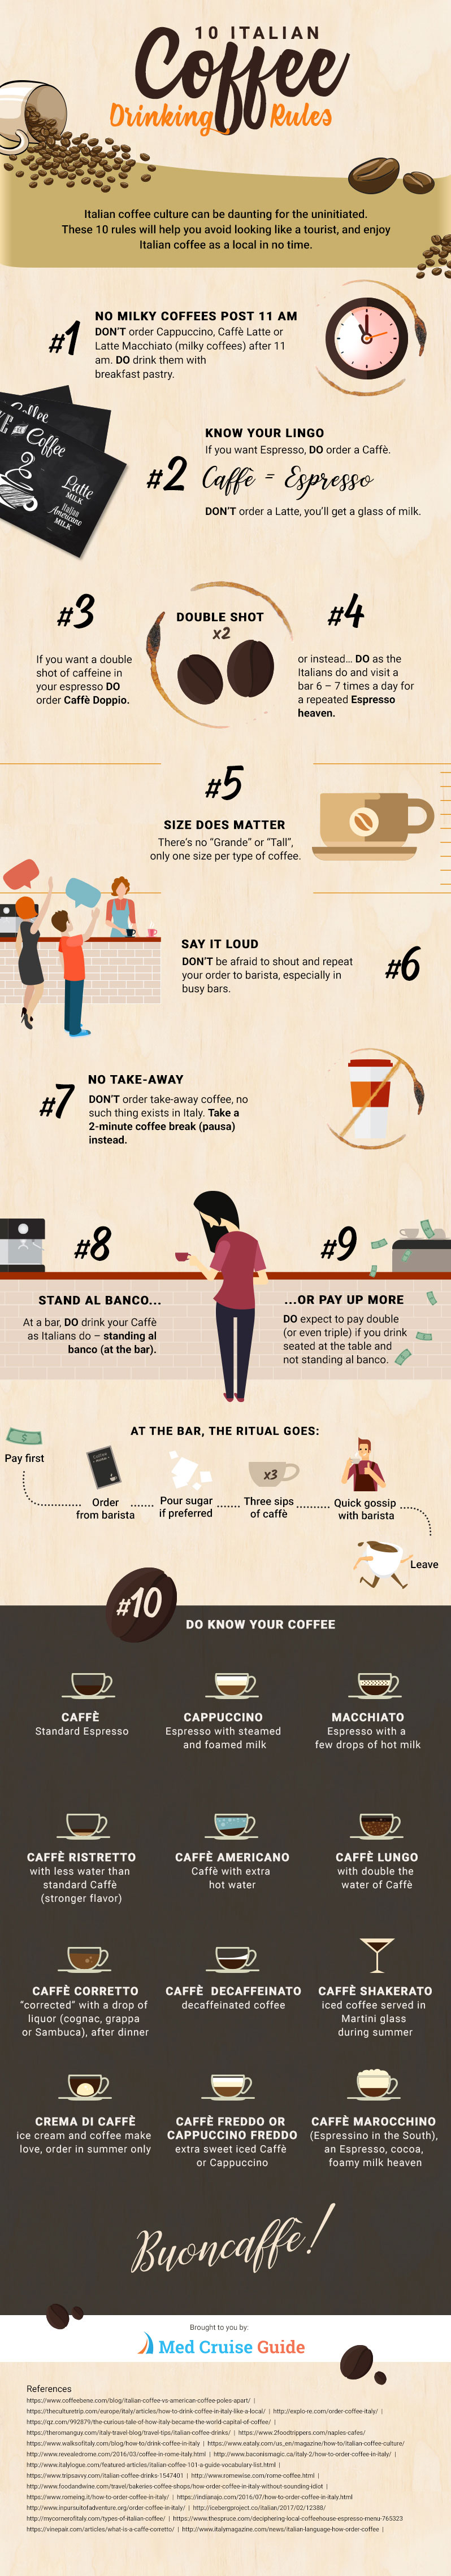 Infographic-10-Italian-Coffee-Drinking-Rules.jpg